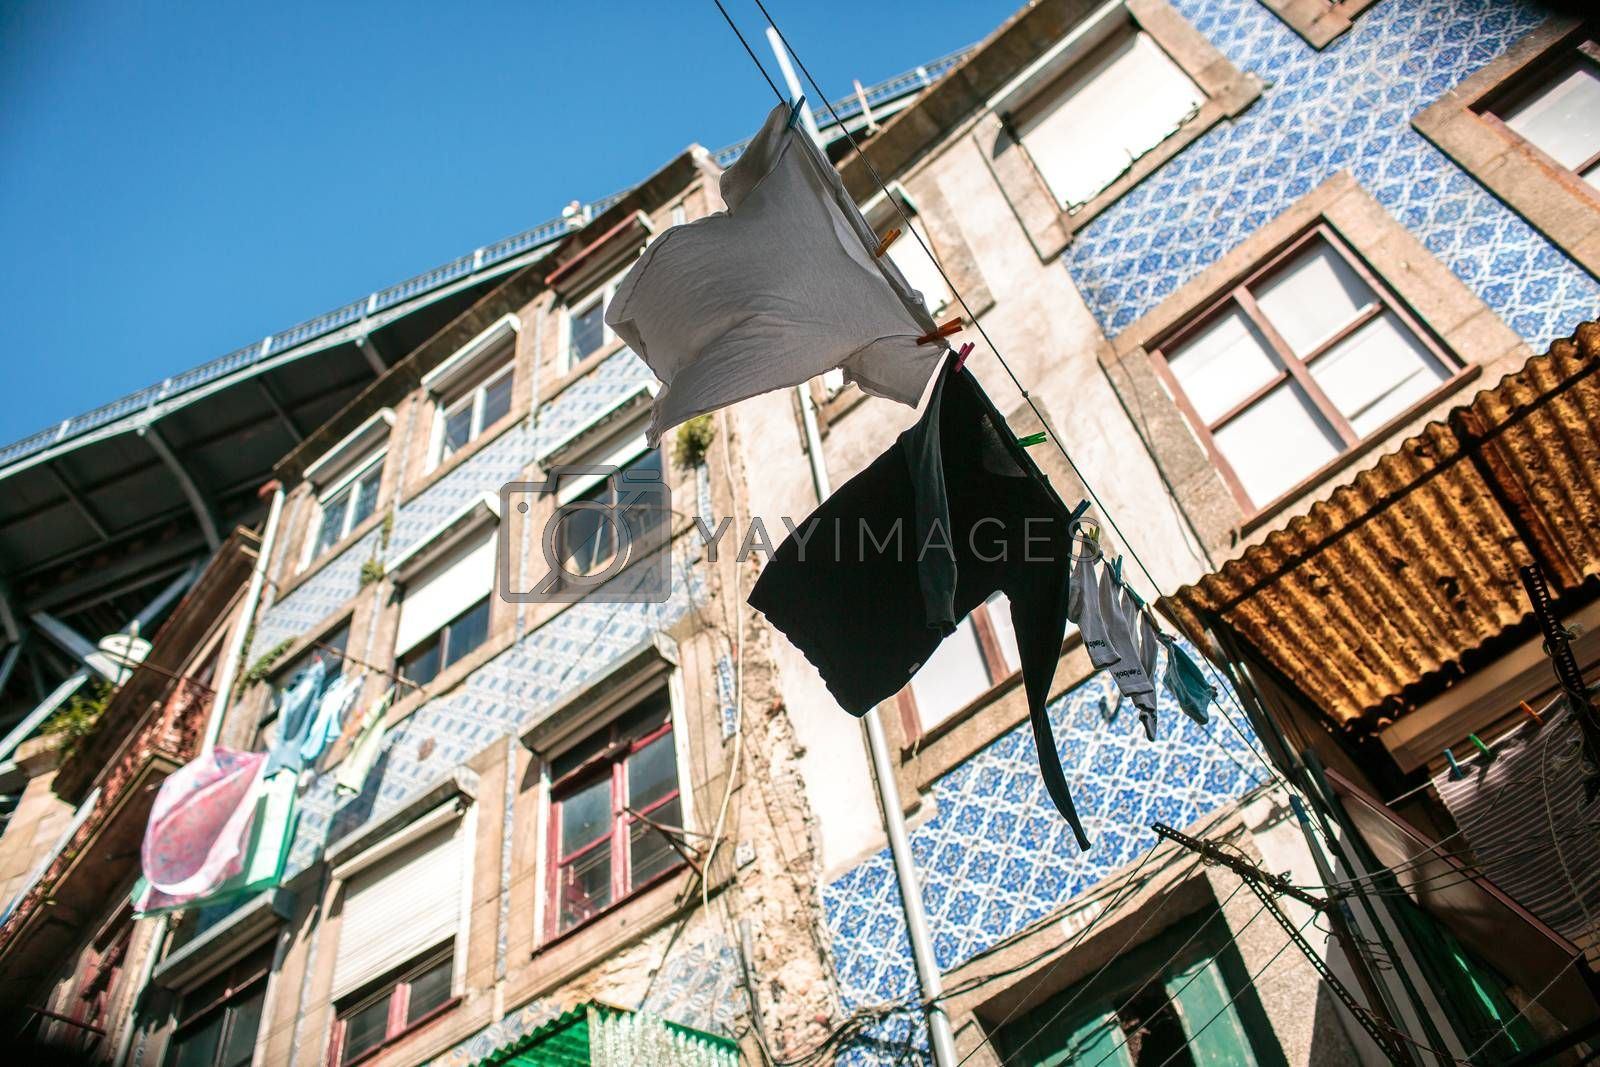 Hanging clothes in the city of Porto, Portugal